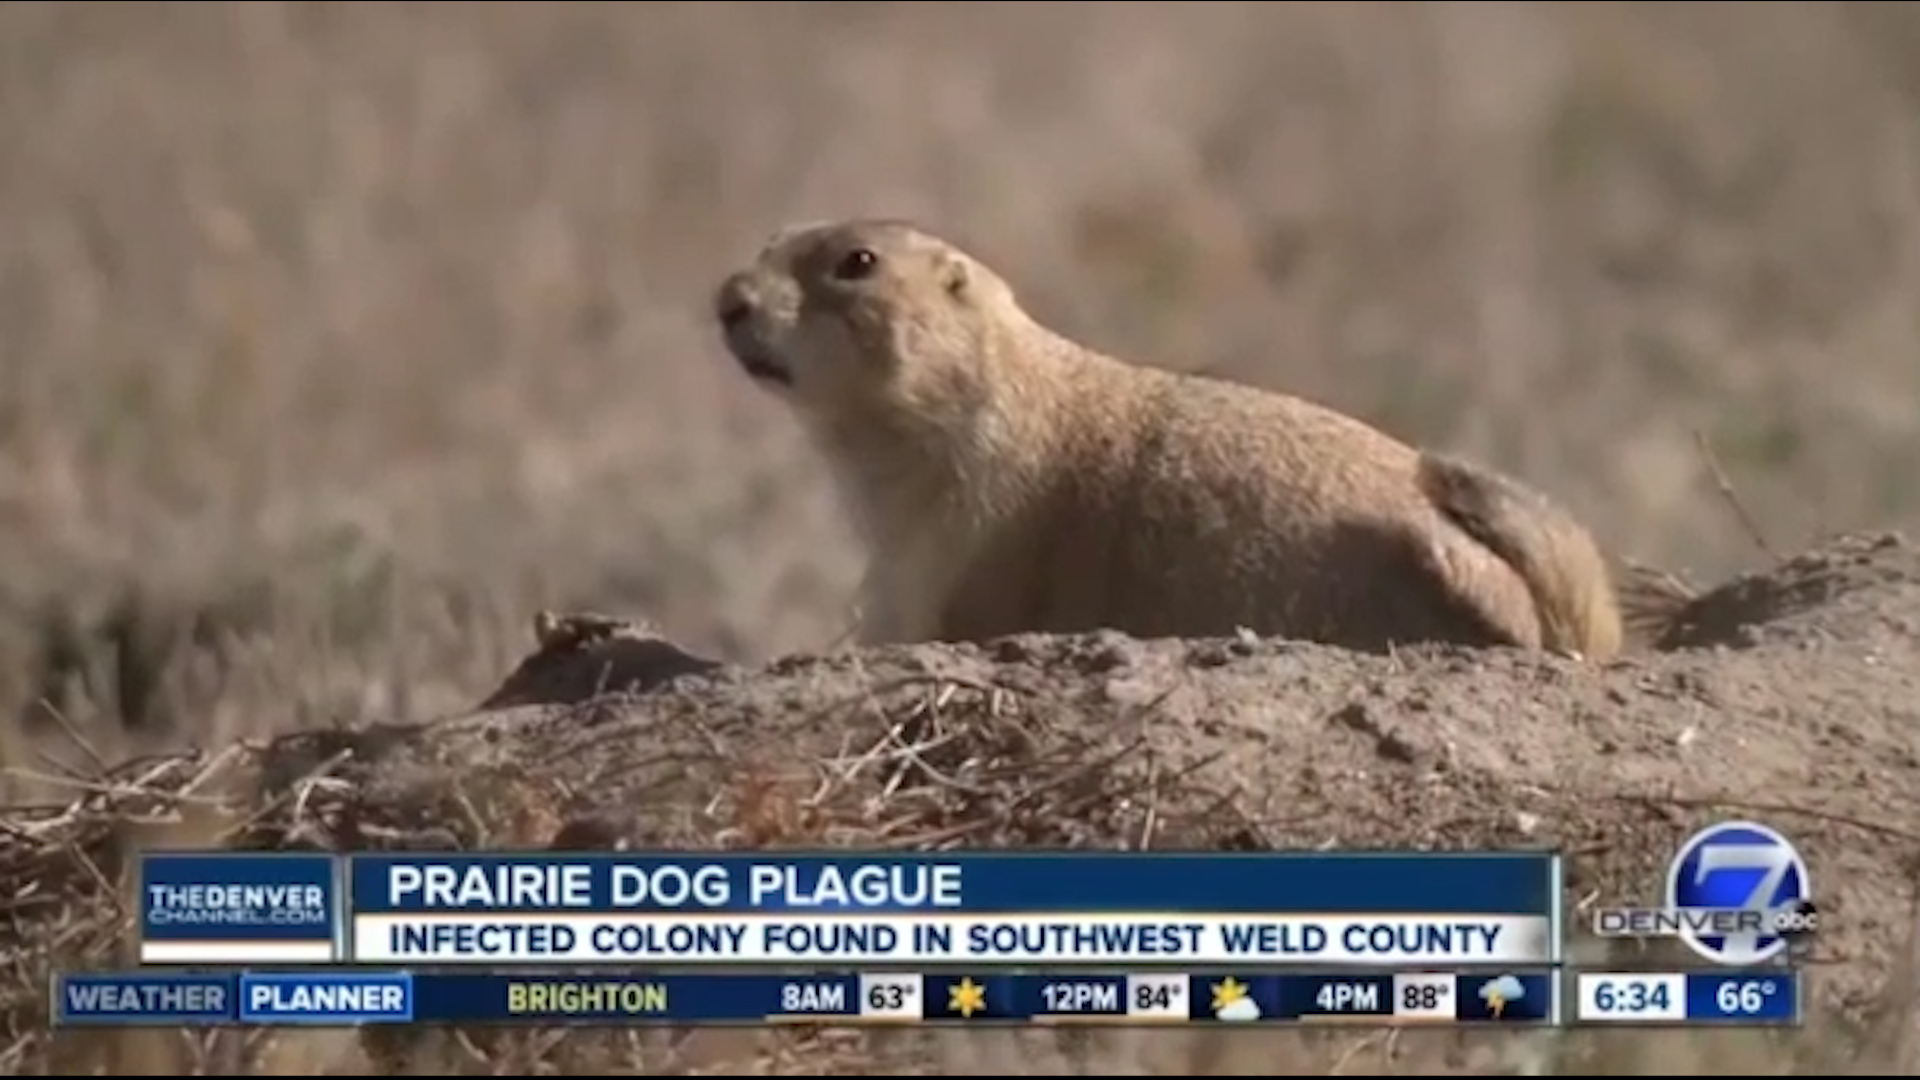 Plague-infected prairie dogs prompt shutdowns near Denver. Fleas can spread it to pets and humans.